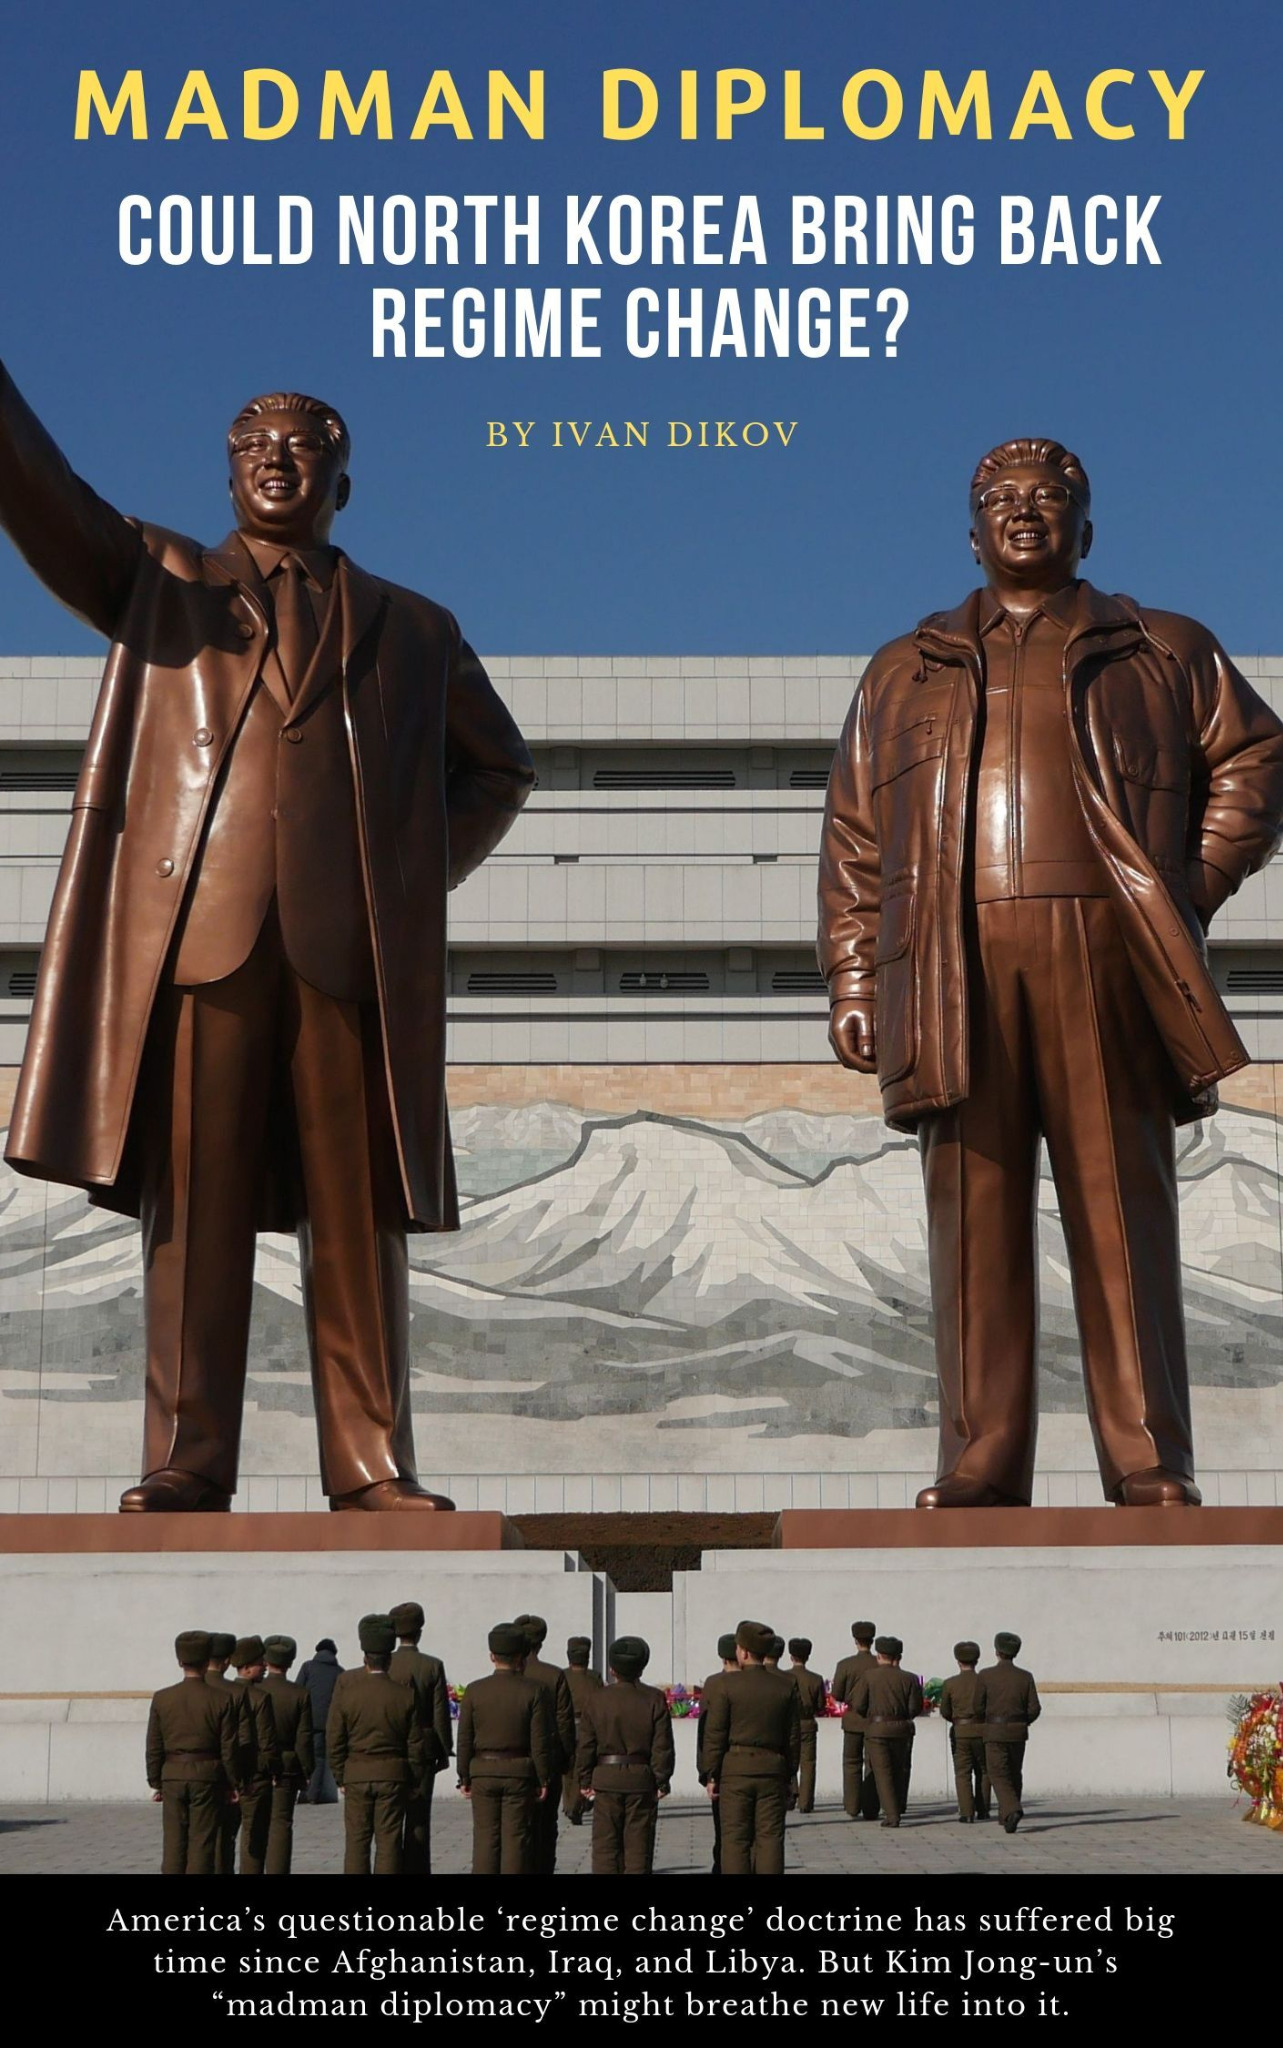 Madman Diplomacy: Is North Korea Trying to Bring Back Regime Change?